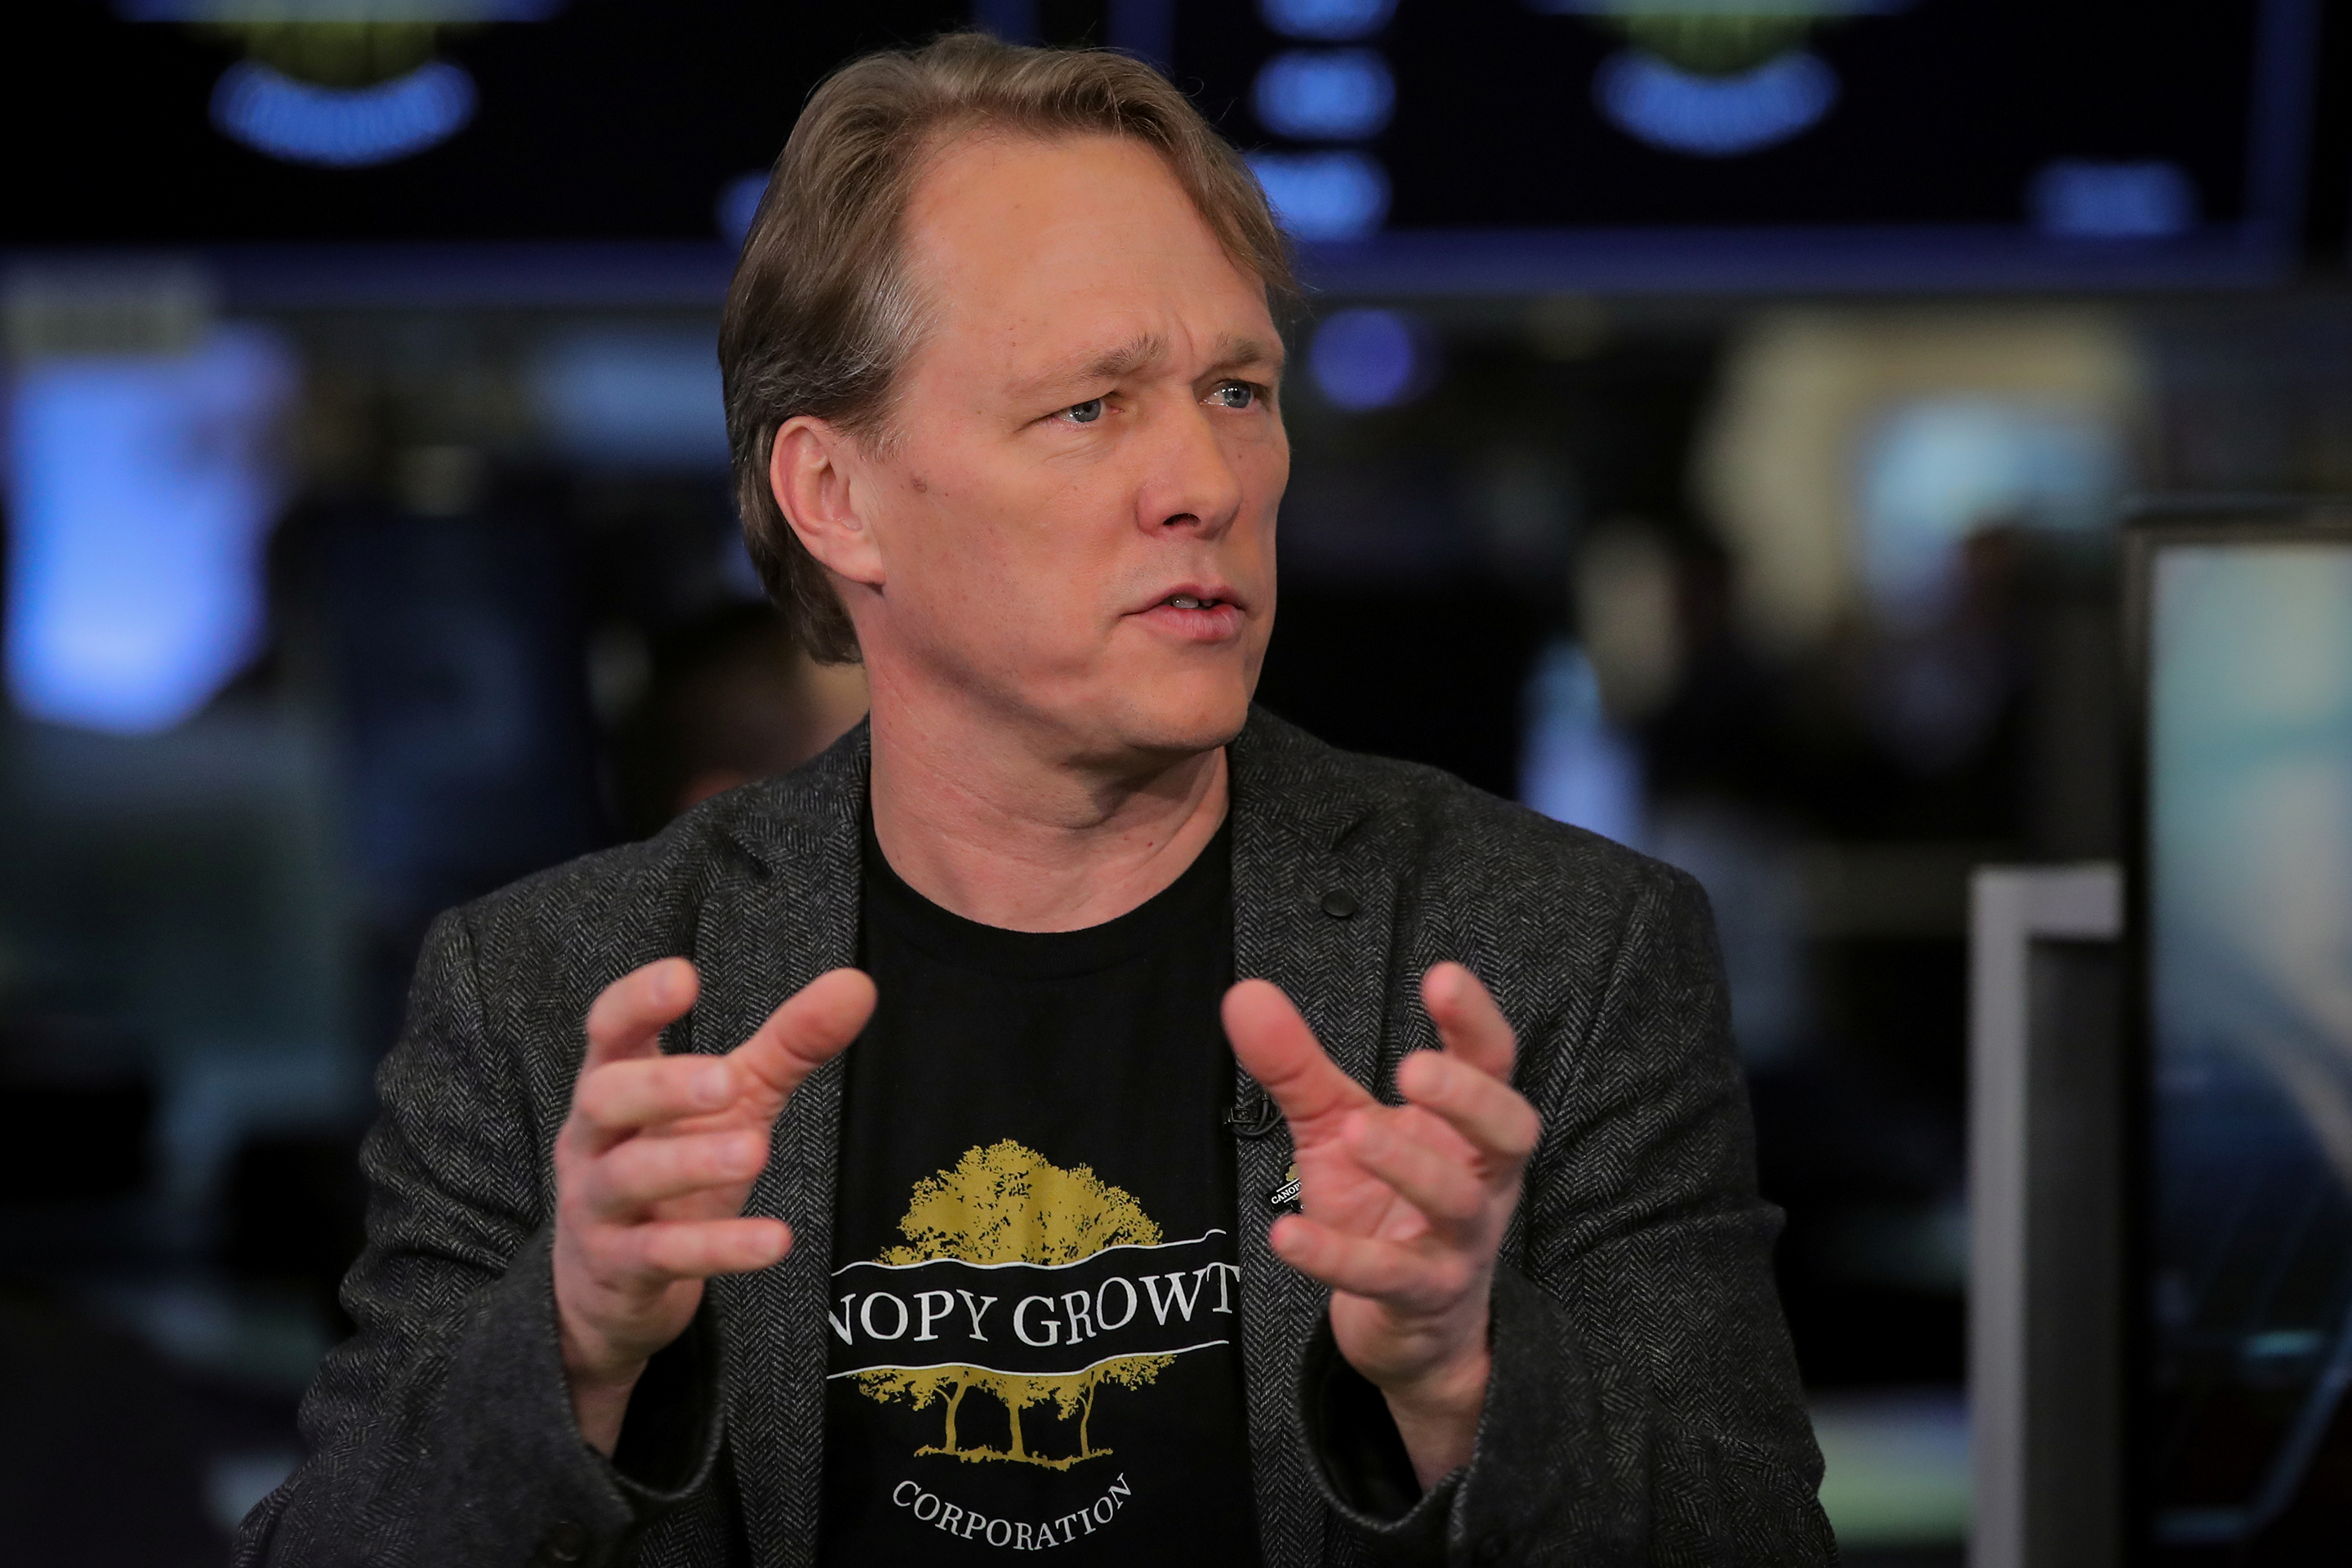 Bruce Linton Founder Co-Ceo Canopy Growth Ousted